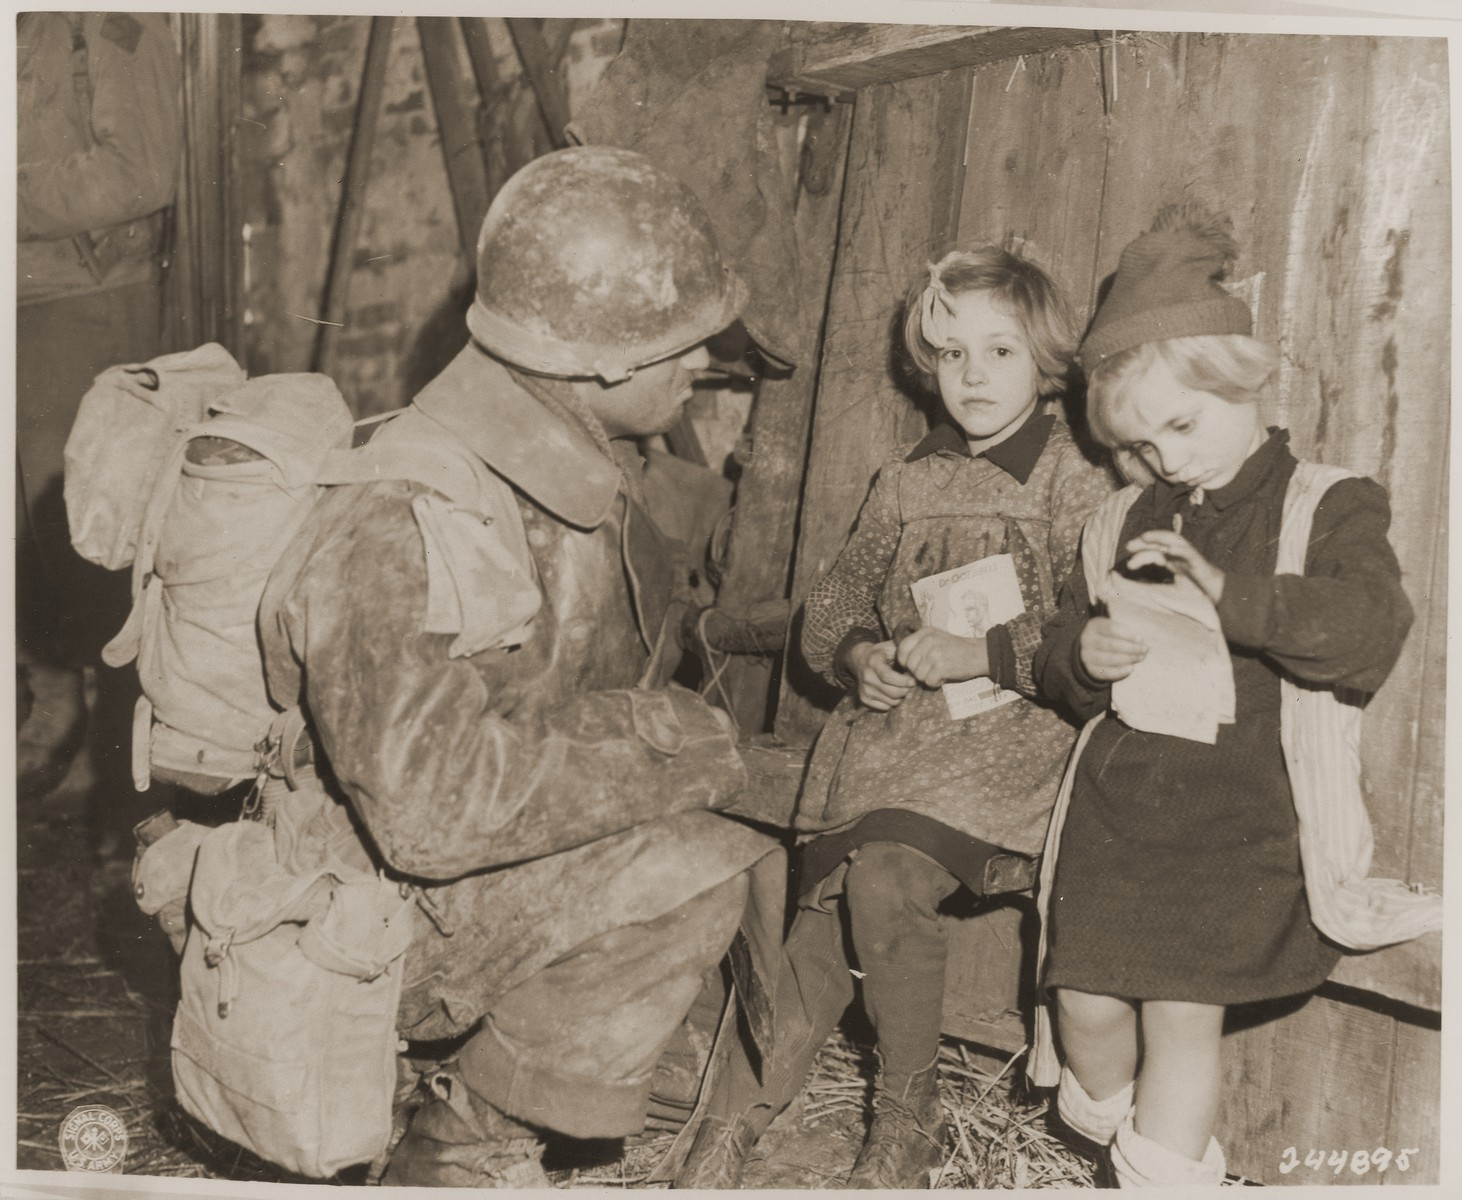 Louis Kolokoff, of the 101st Infantry Regiment, 26th Division, talks to two French girls who are holding Goebbels literature.